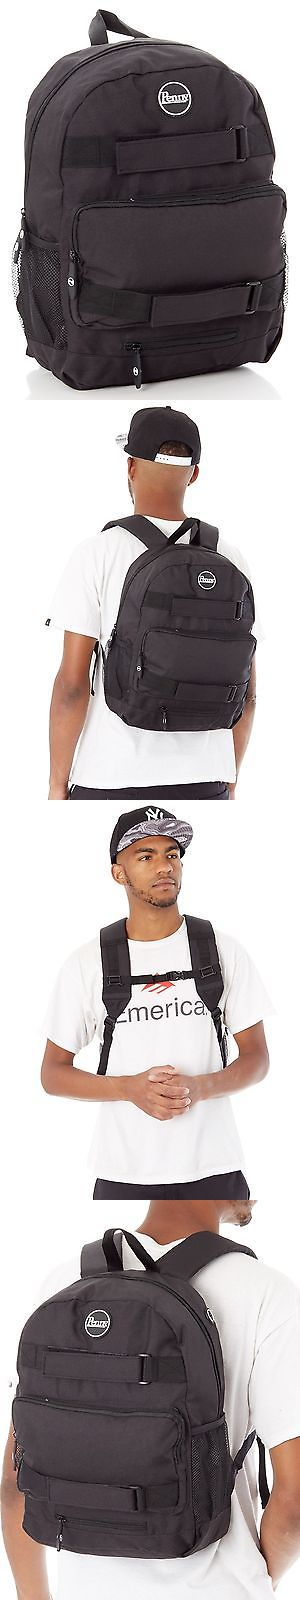 Other Skateboarding Clothing 159079: Penny Mens Pouch Backpack -> BUY IT NOW ONLY: $44.99 on eBay!